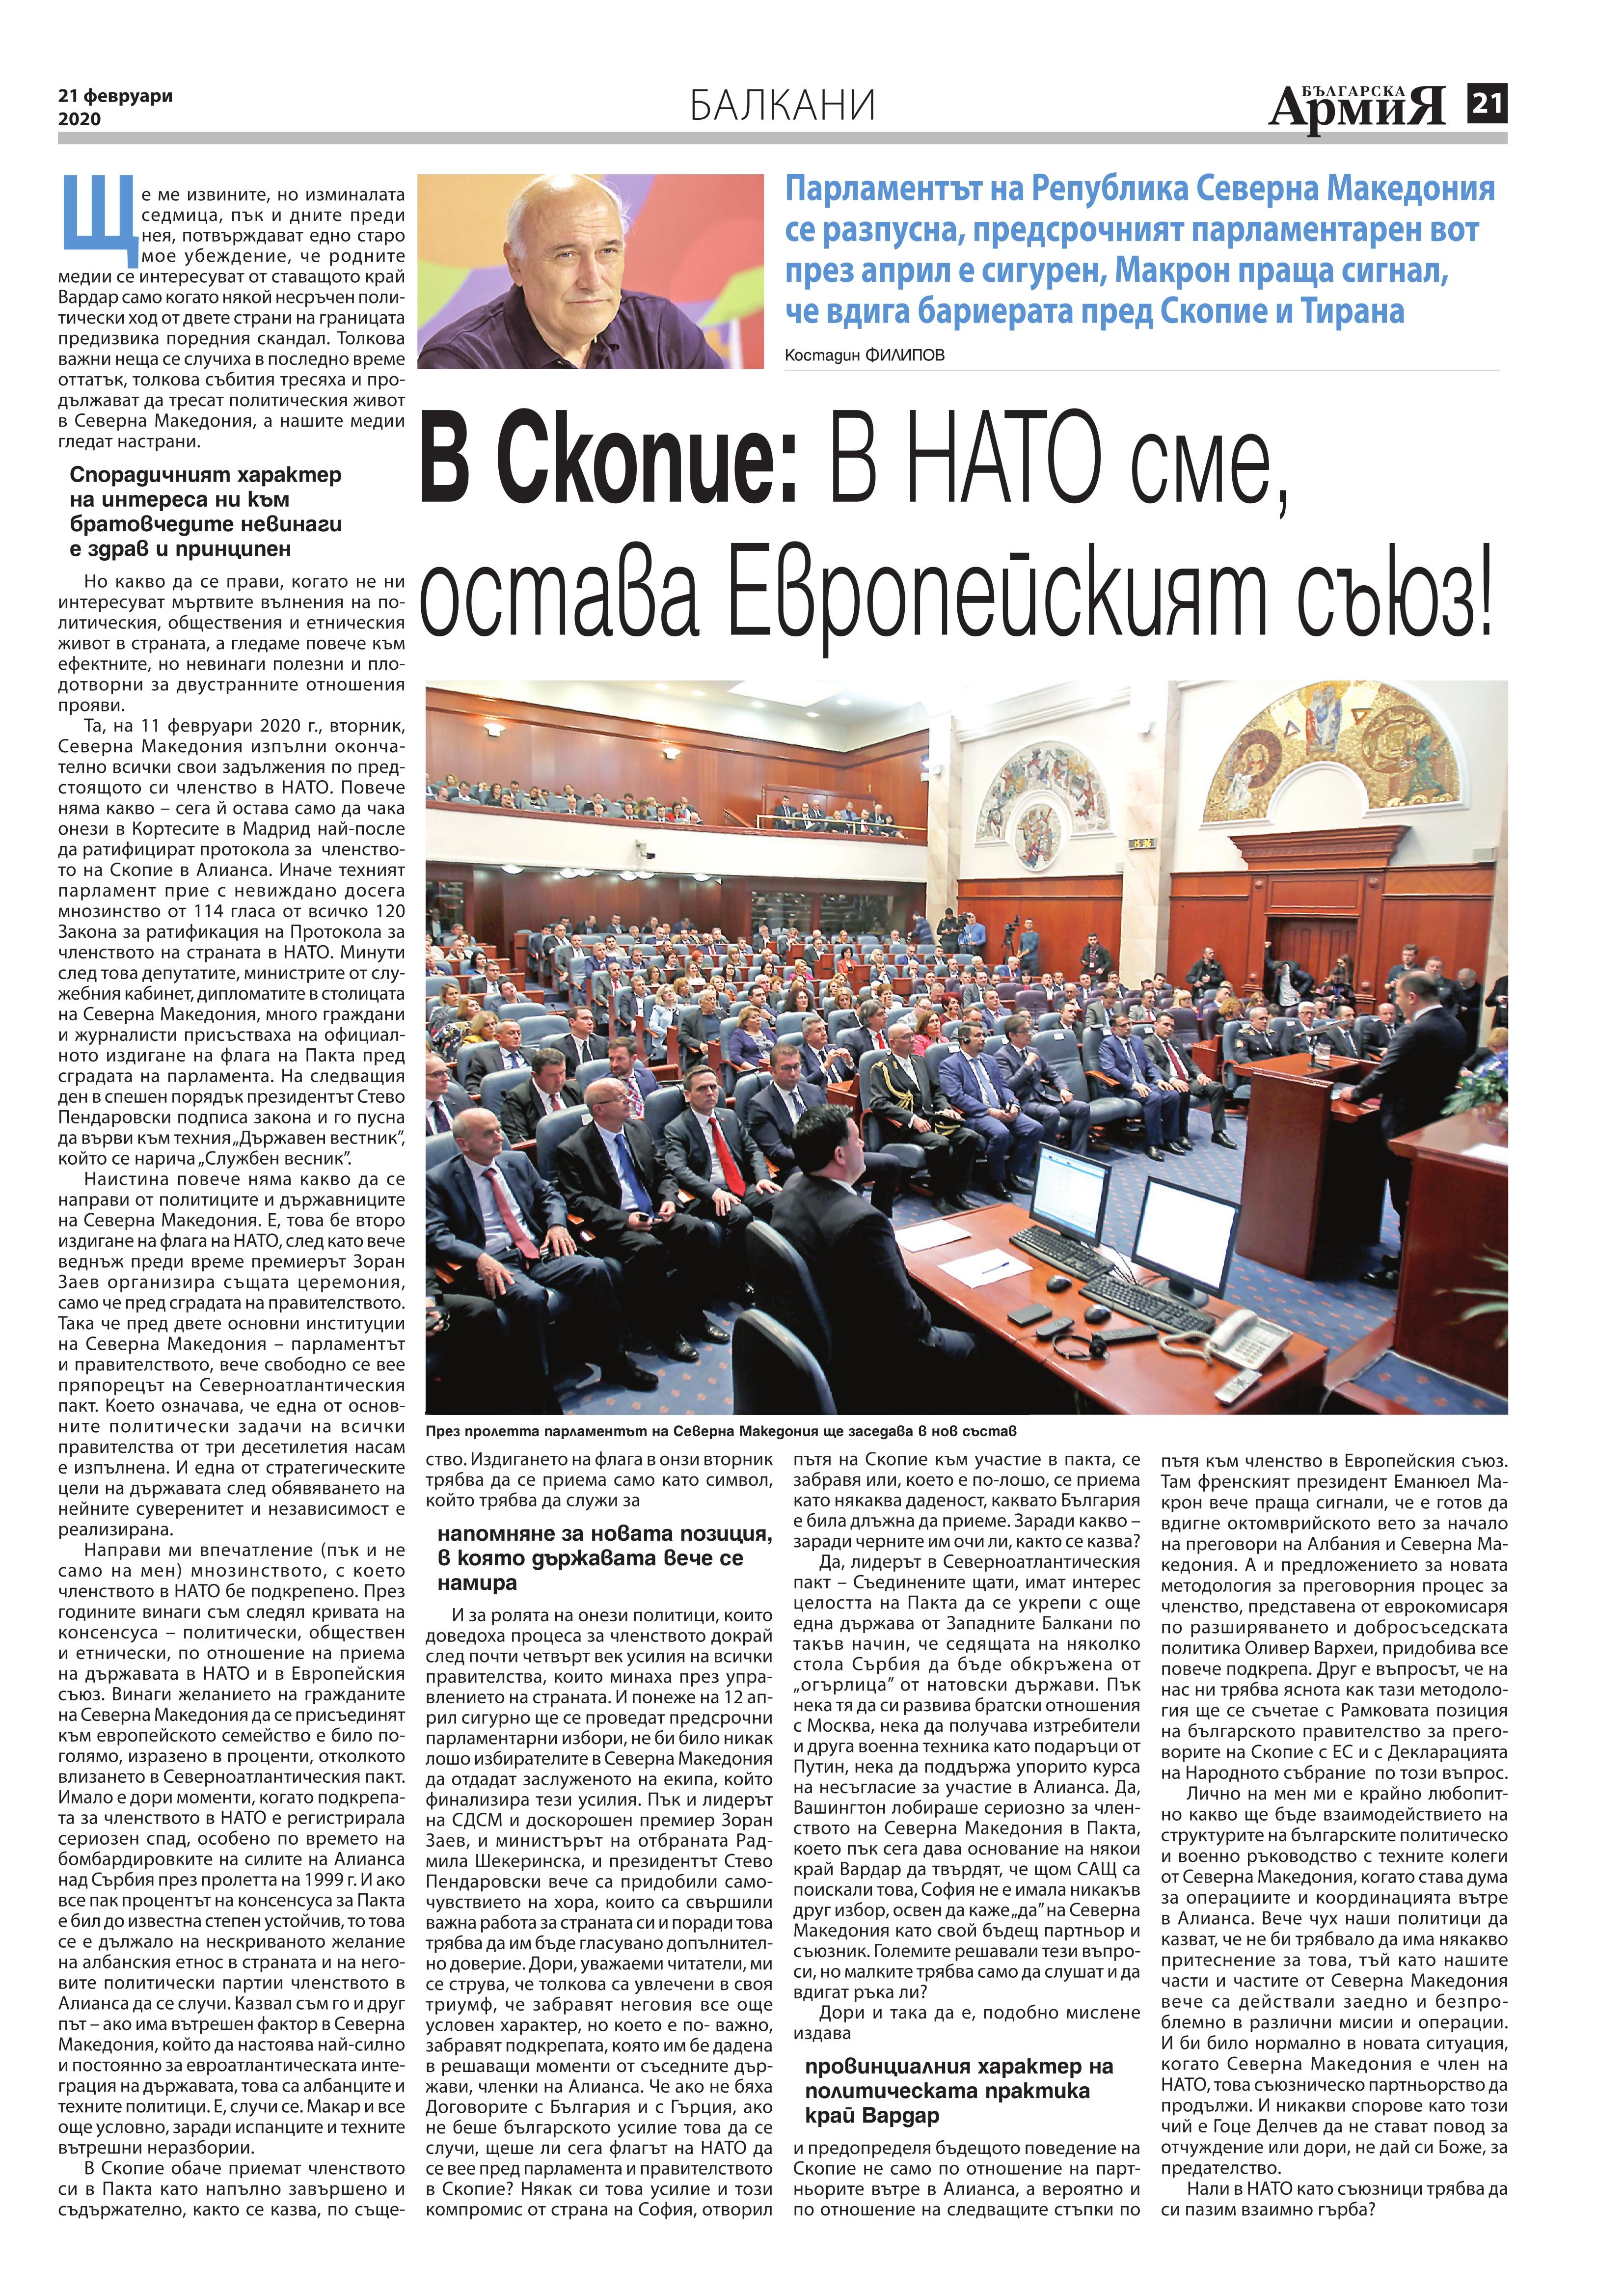 https://www.armymedia.bg/wp-content/uploads/2015/06/21.page1_-127.jpg